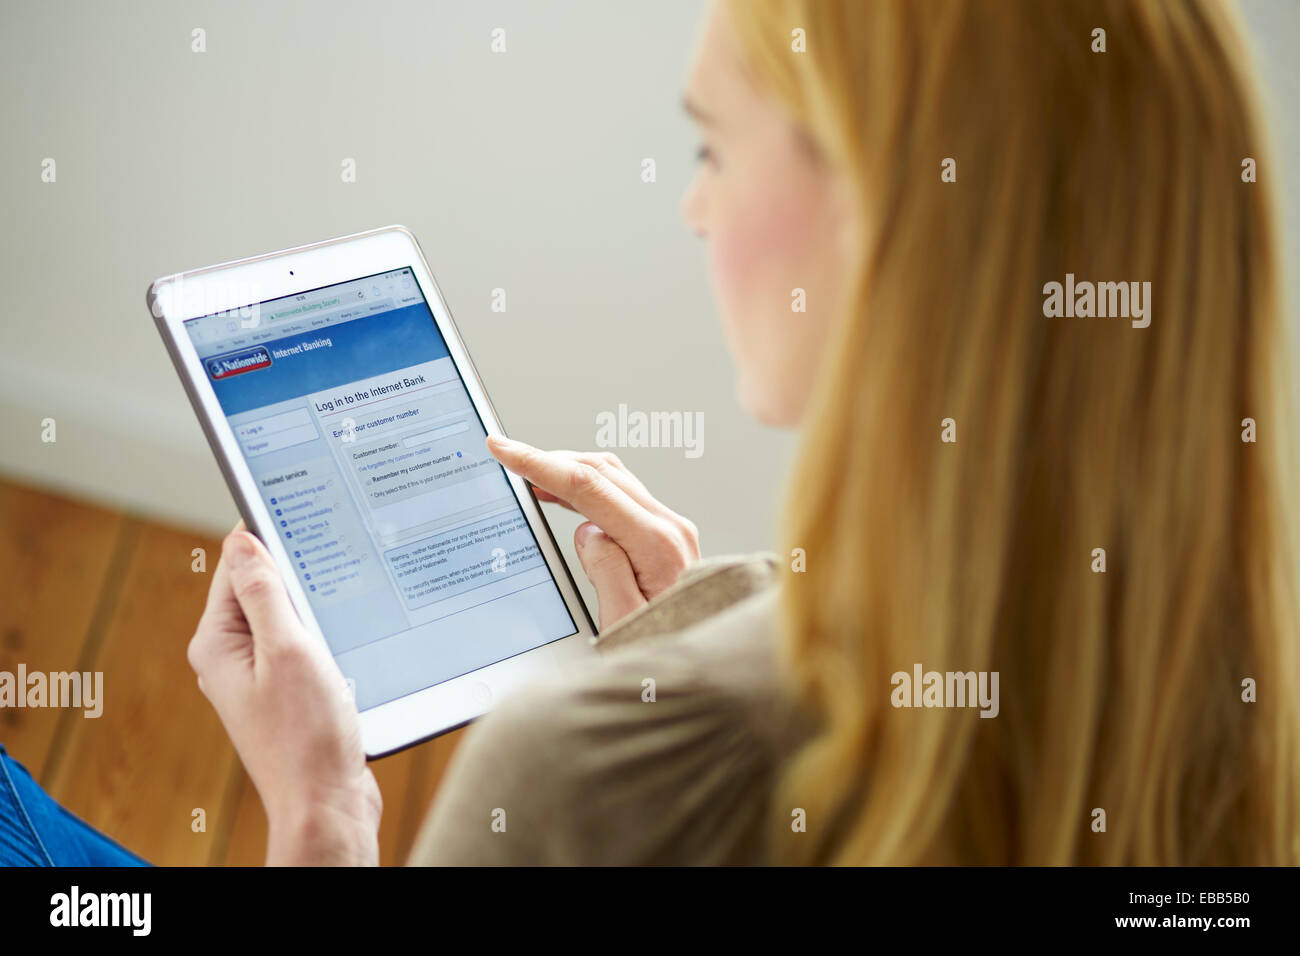 Woman banking online using an iPad - Stock Image